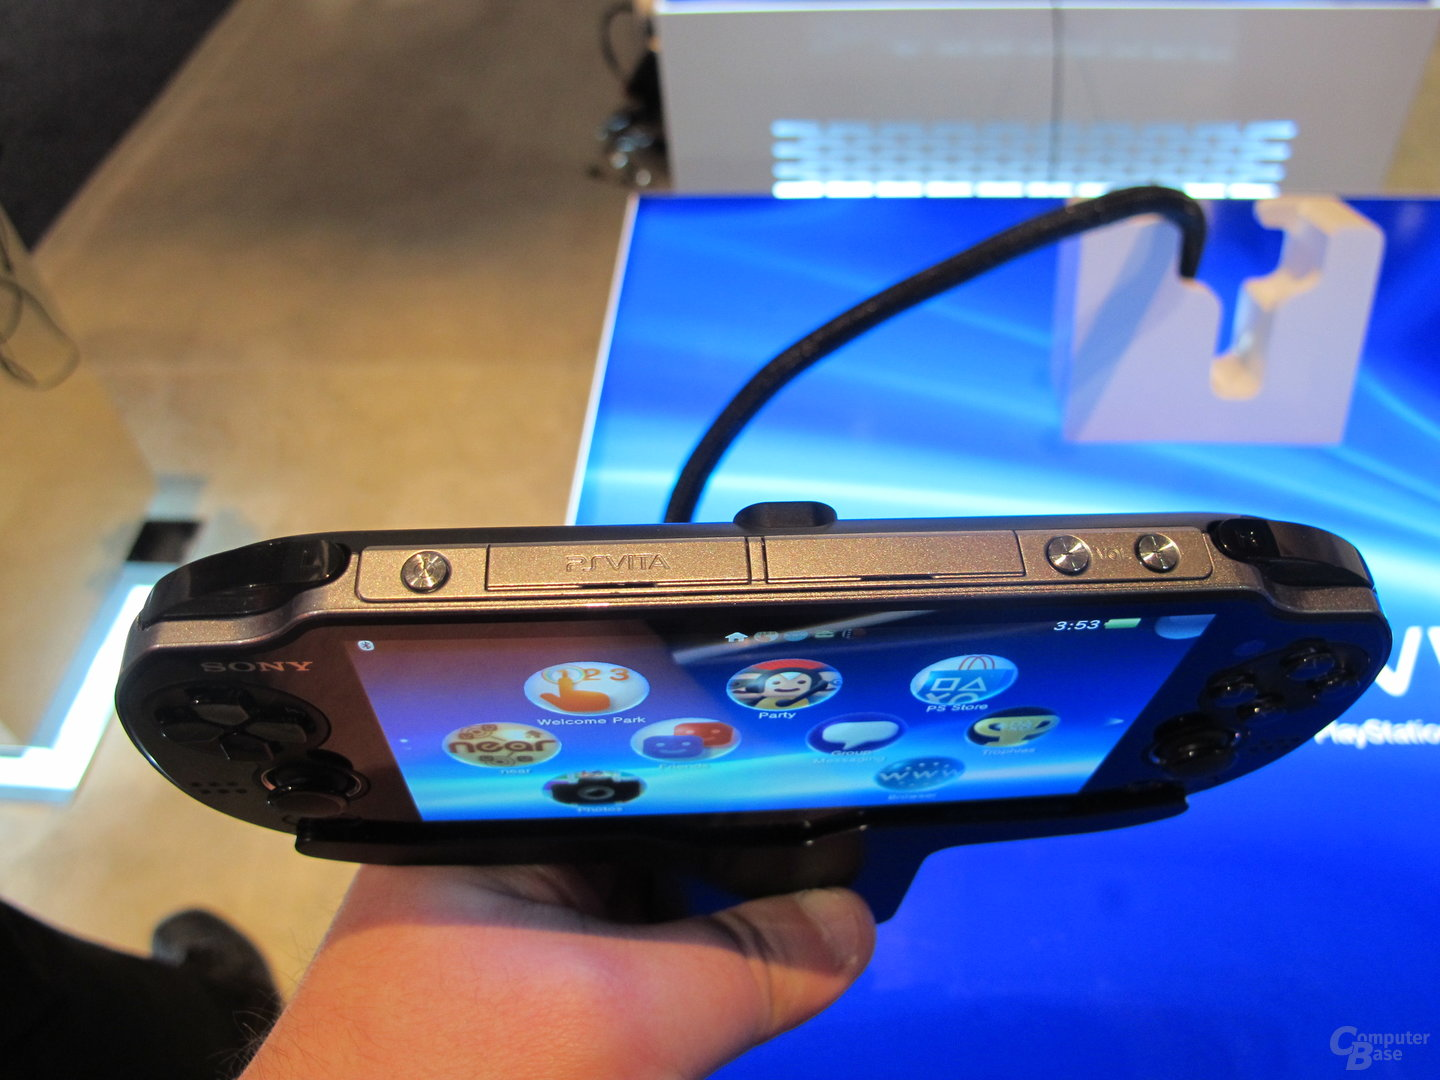 Sony PlayStation Vita - Hands-on